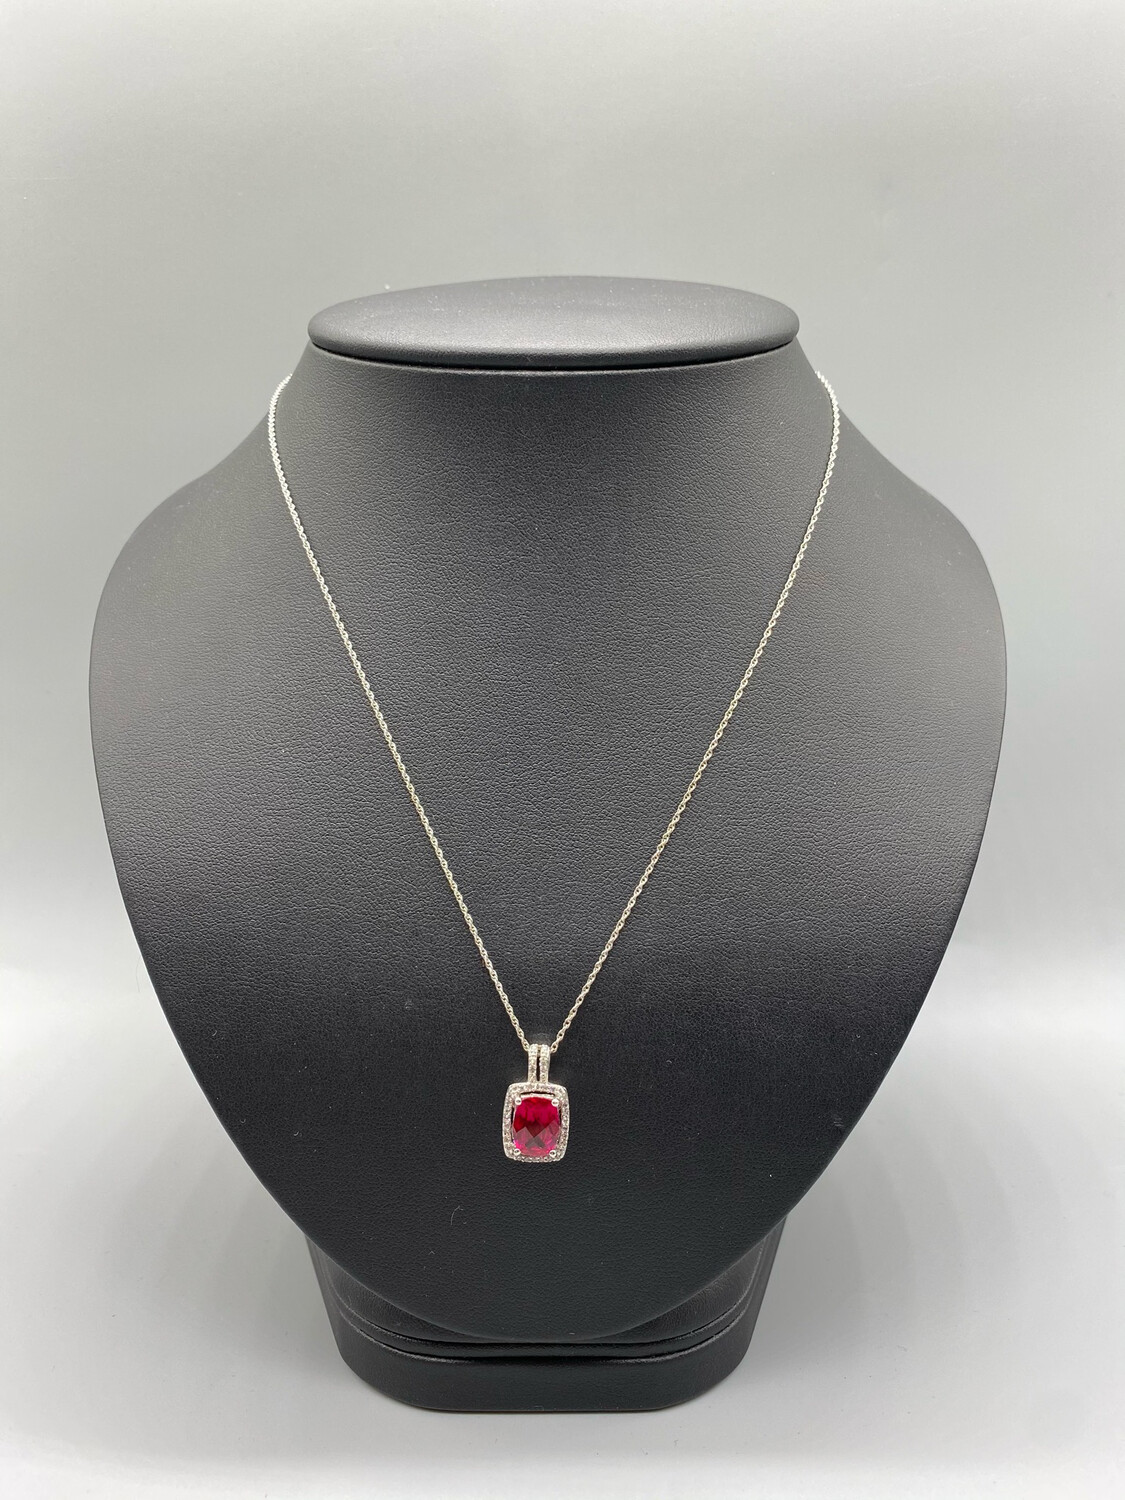 Silver Pendant Necklace With Square Cut Red Stone